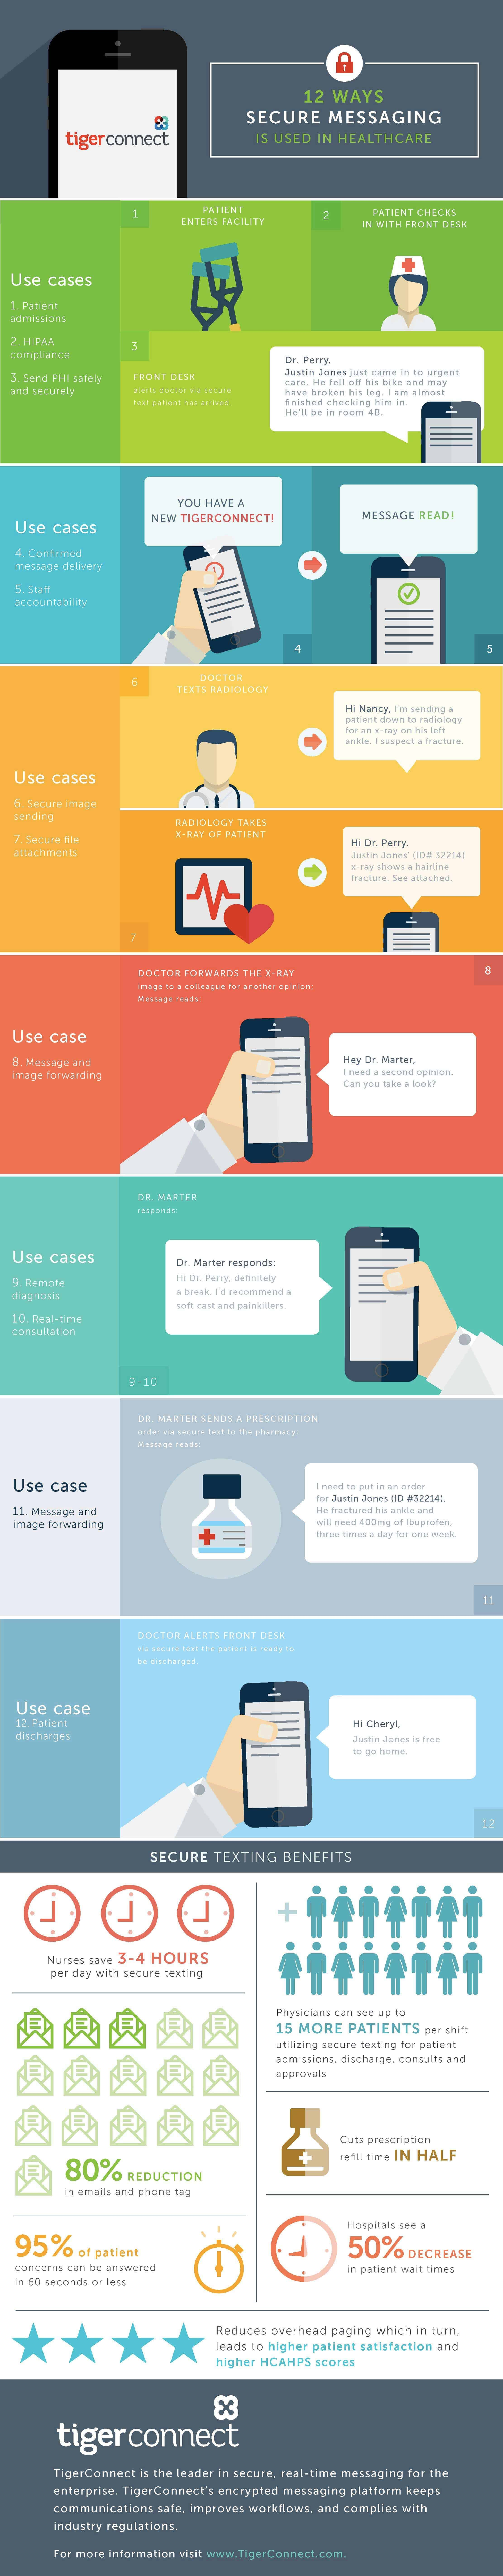 12 Ways Secure Messaging Is Used in Healthcare Infographic Preview